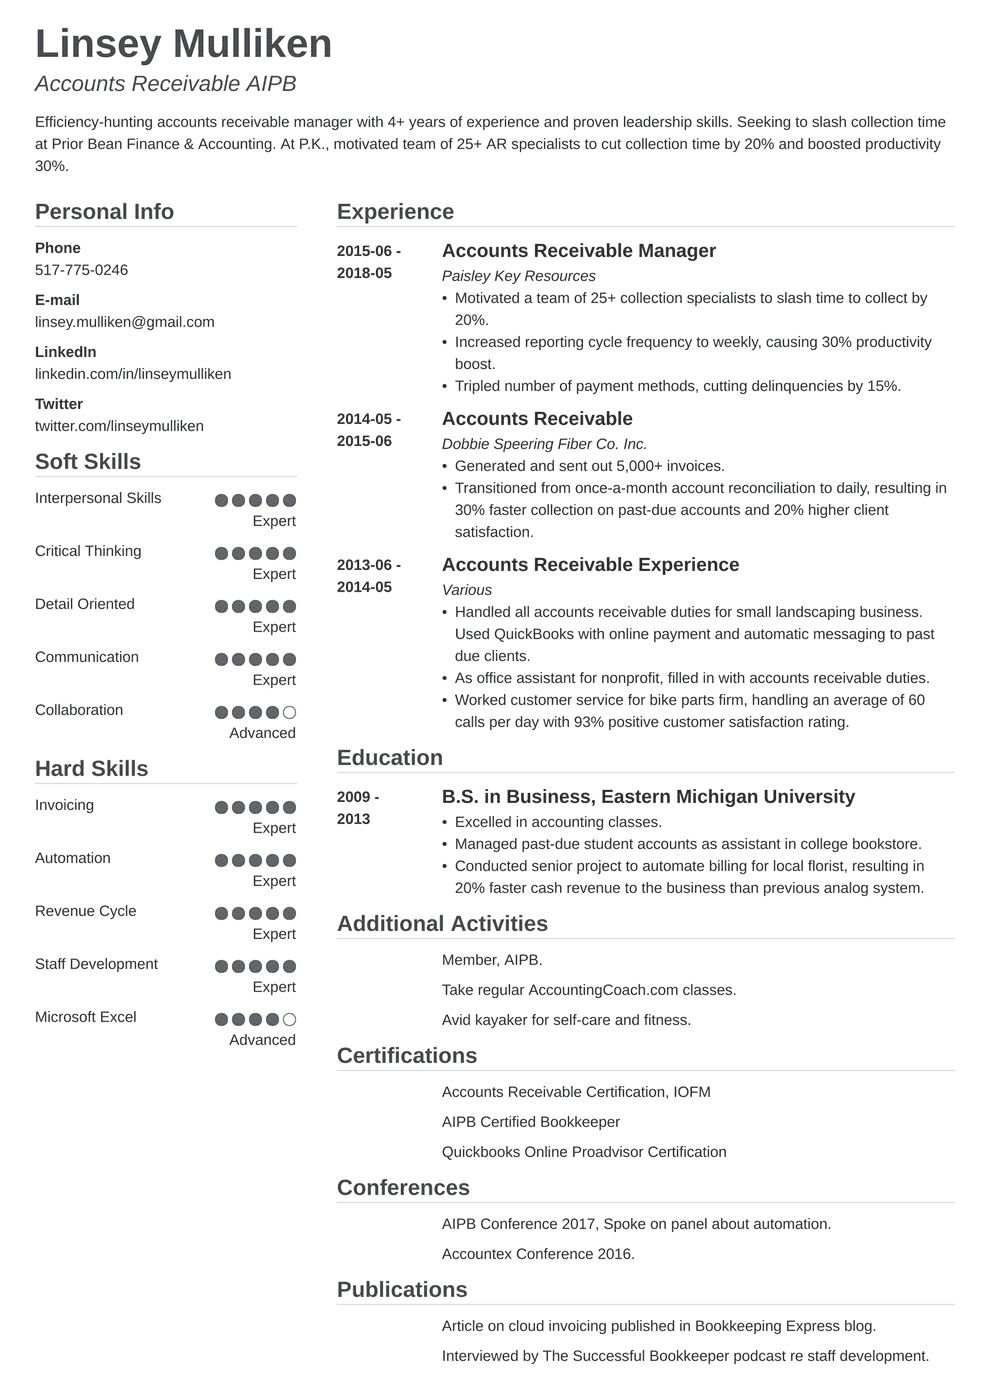 Accounts Payable Receivable Resume Samples 20 Ap Ar Examples